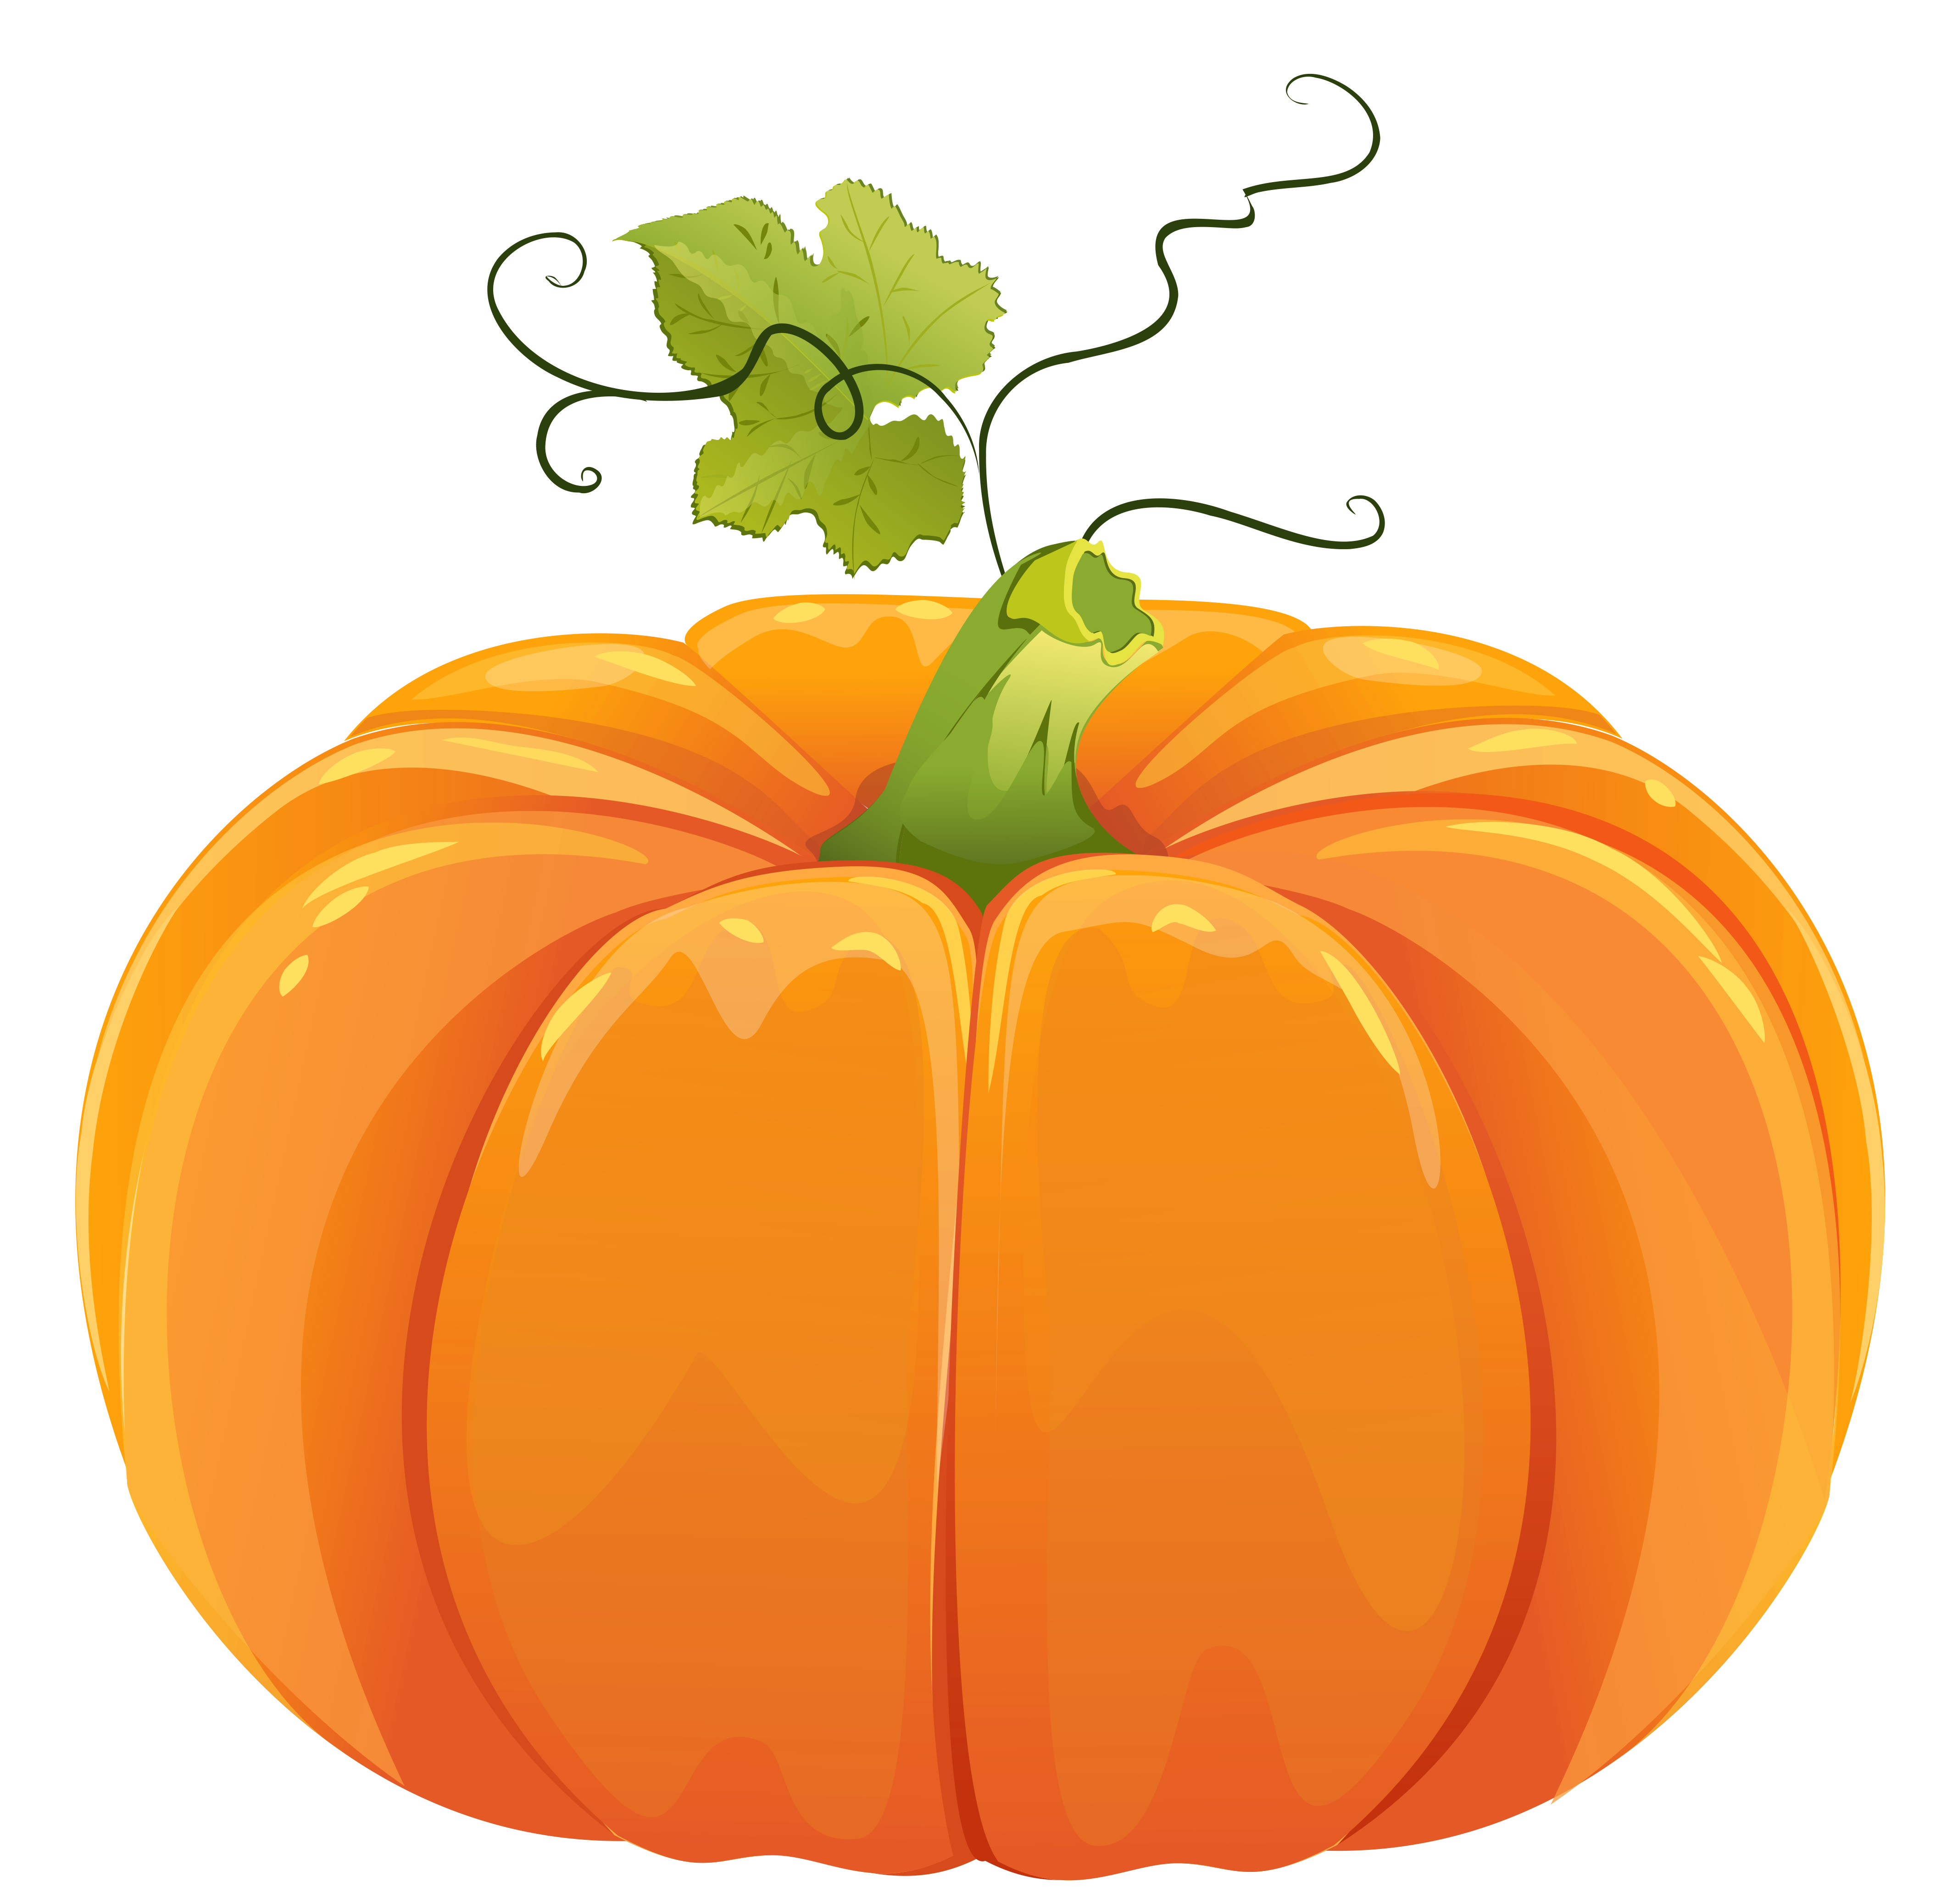 Pumpkins clipart of different sizes banner library Clip art of pumpkins - ClipartFest banner library